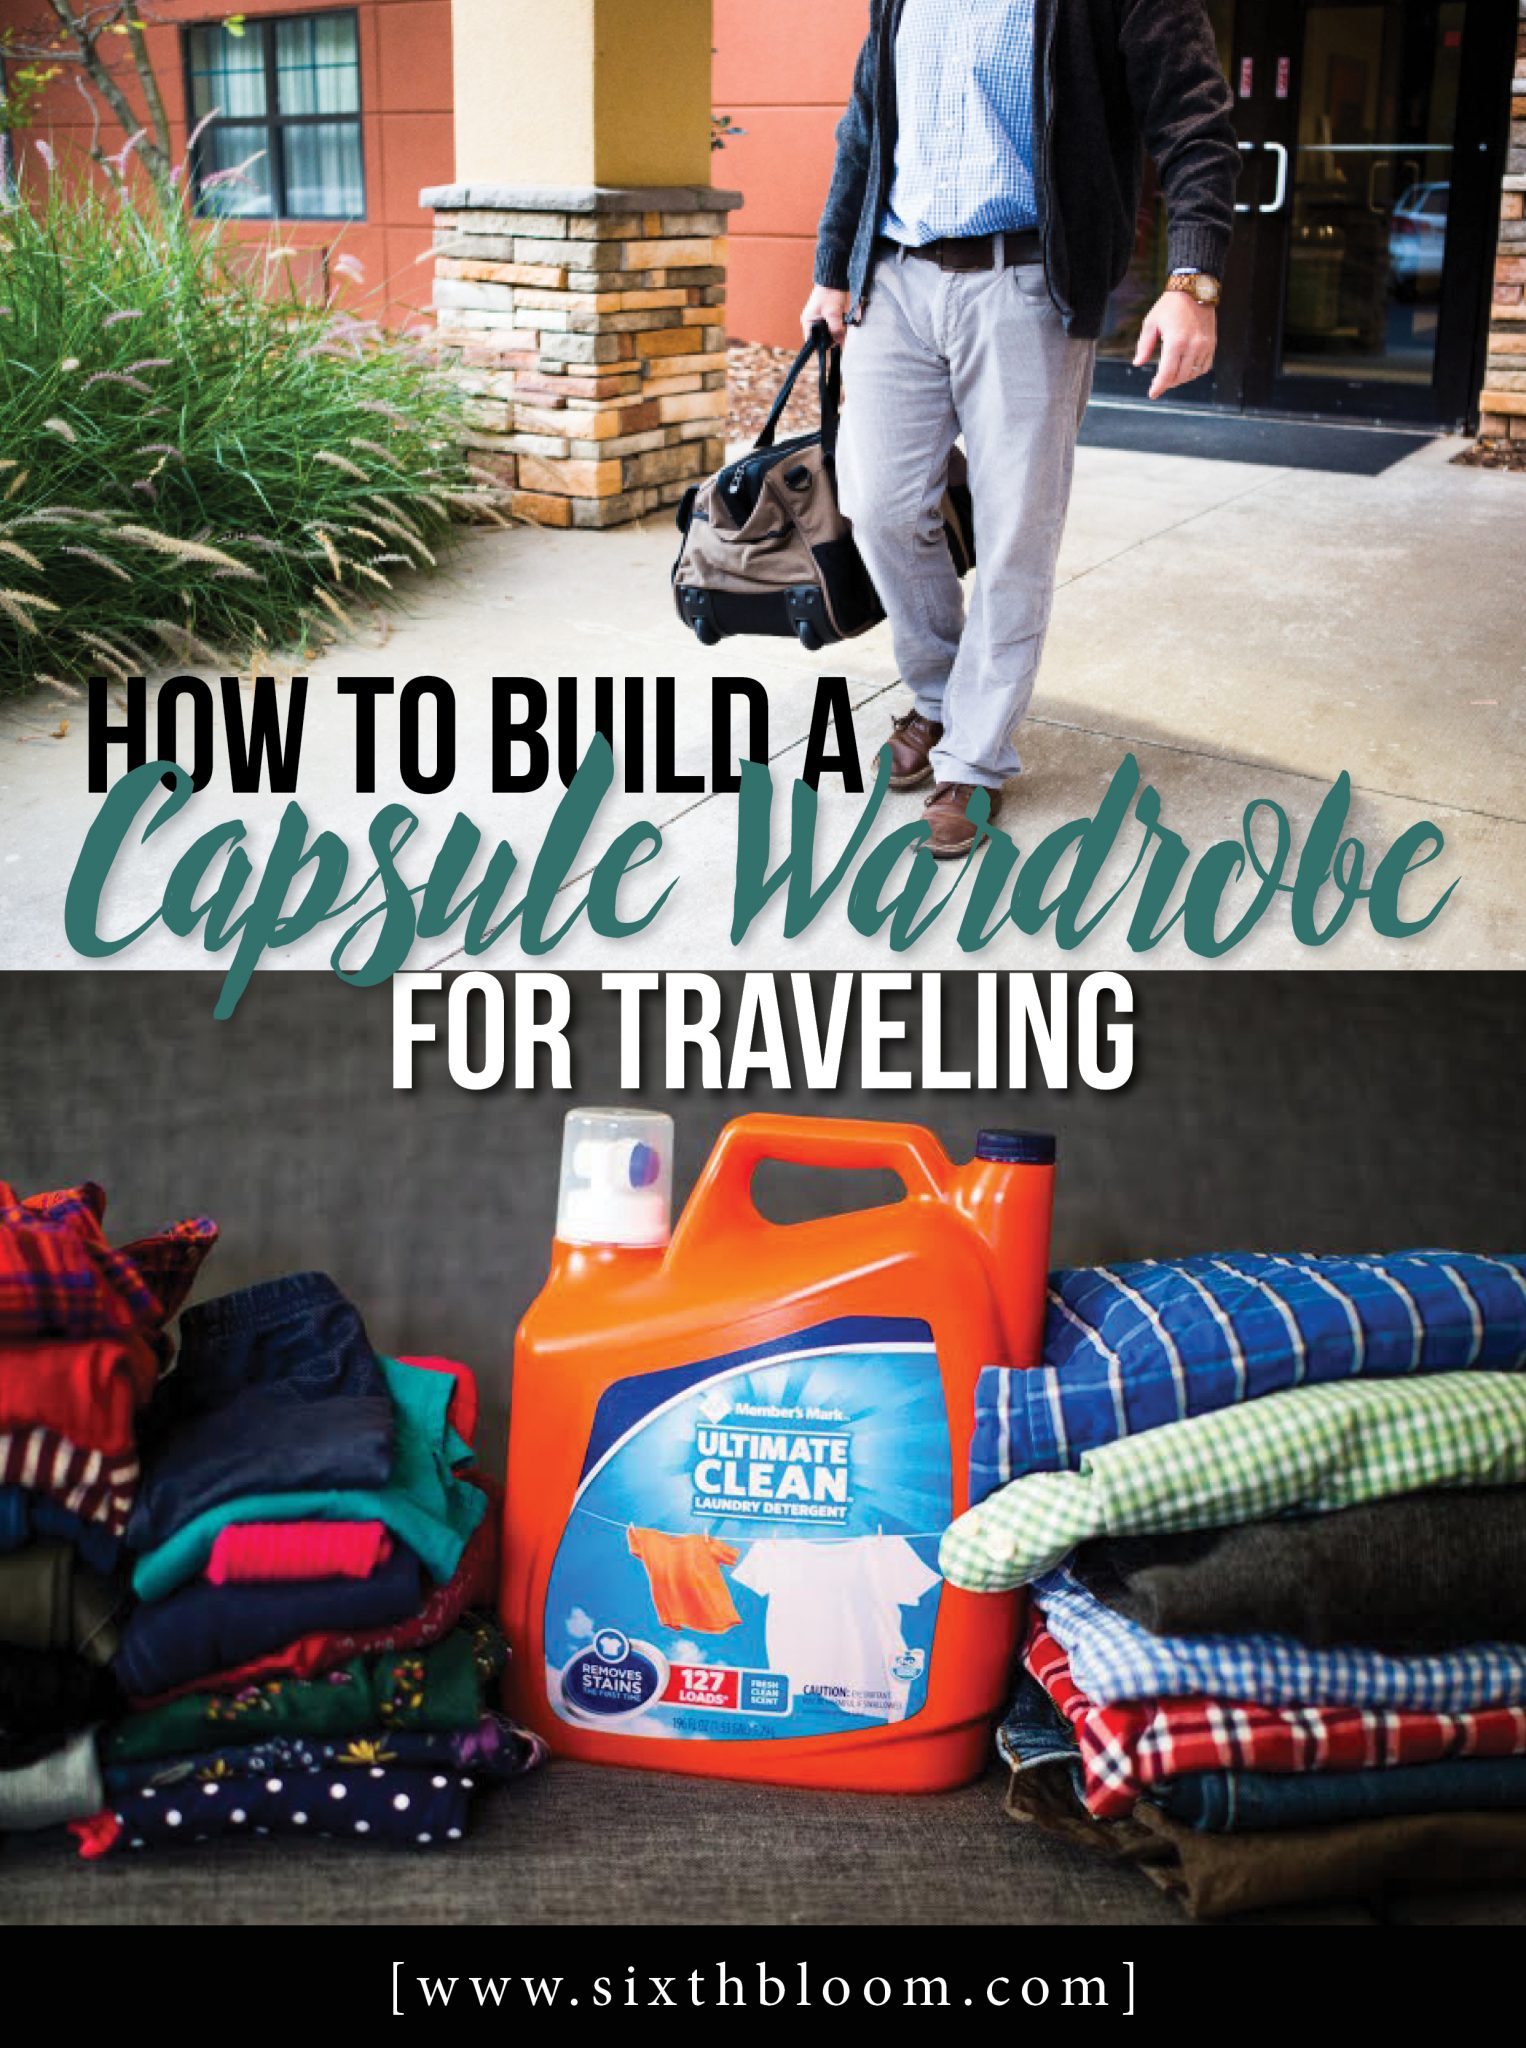 How to Build a Capsule Wardrobe for Traveling